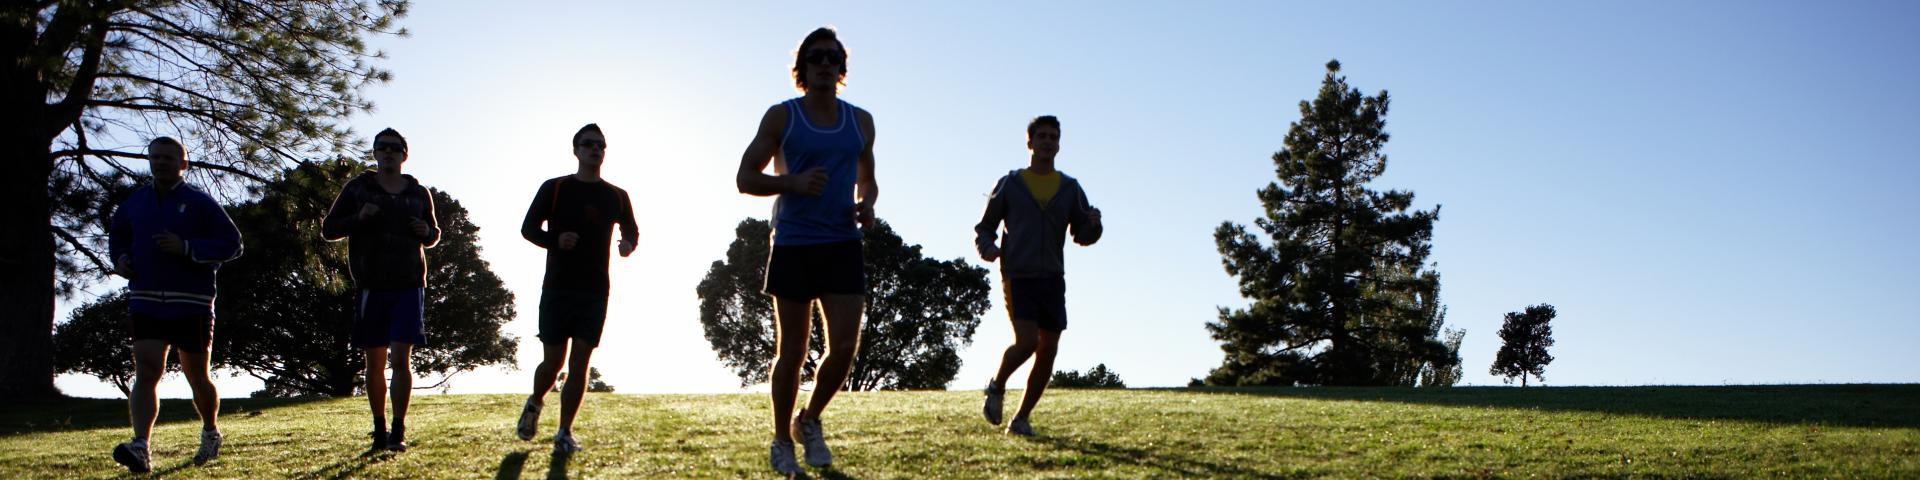 runners in a parc